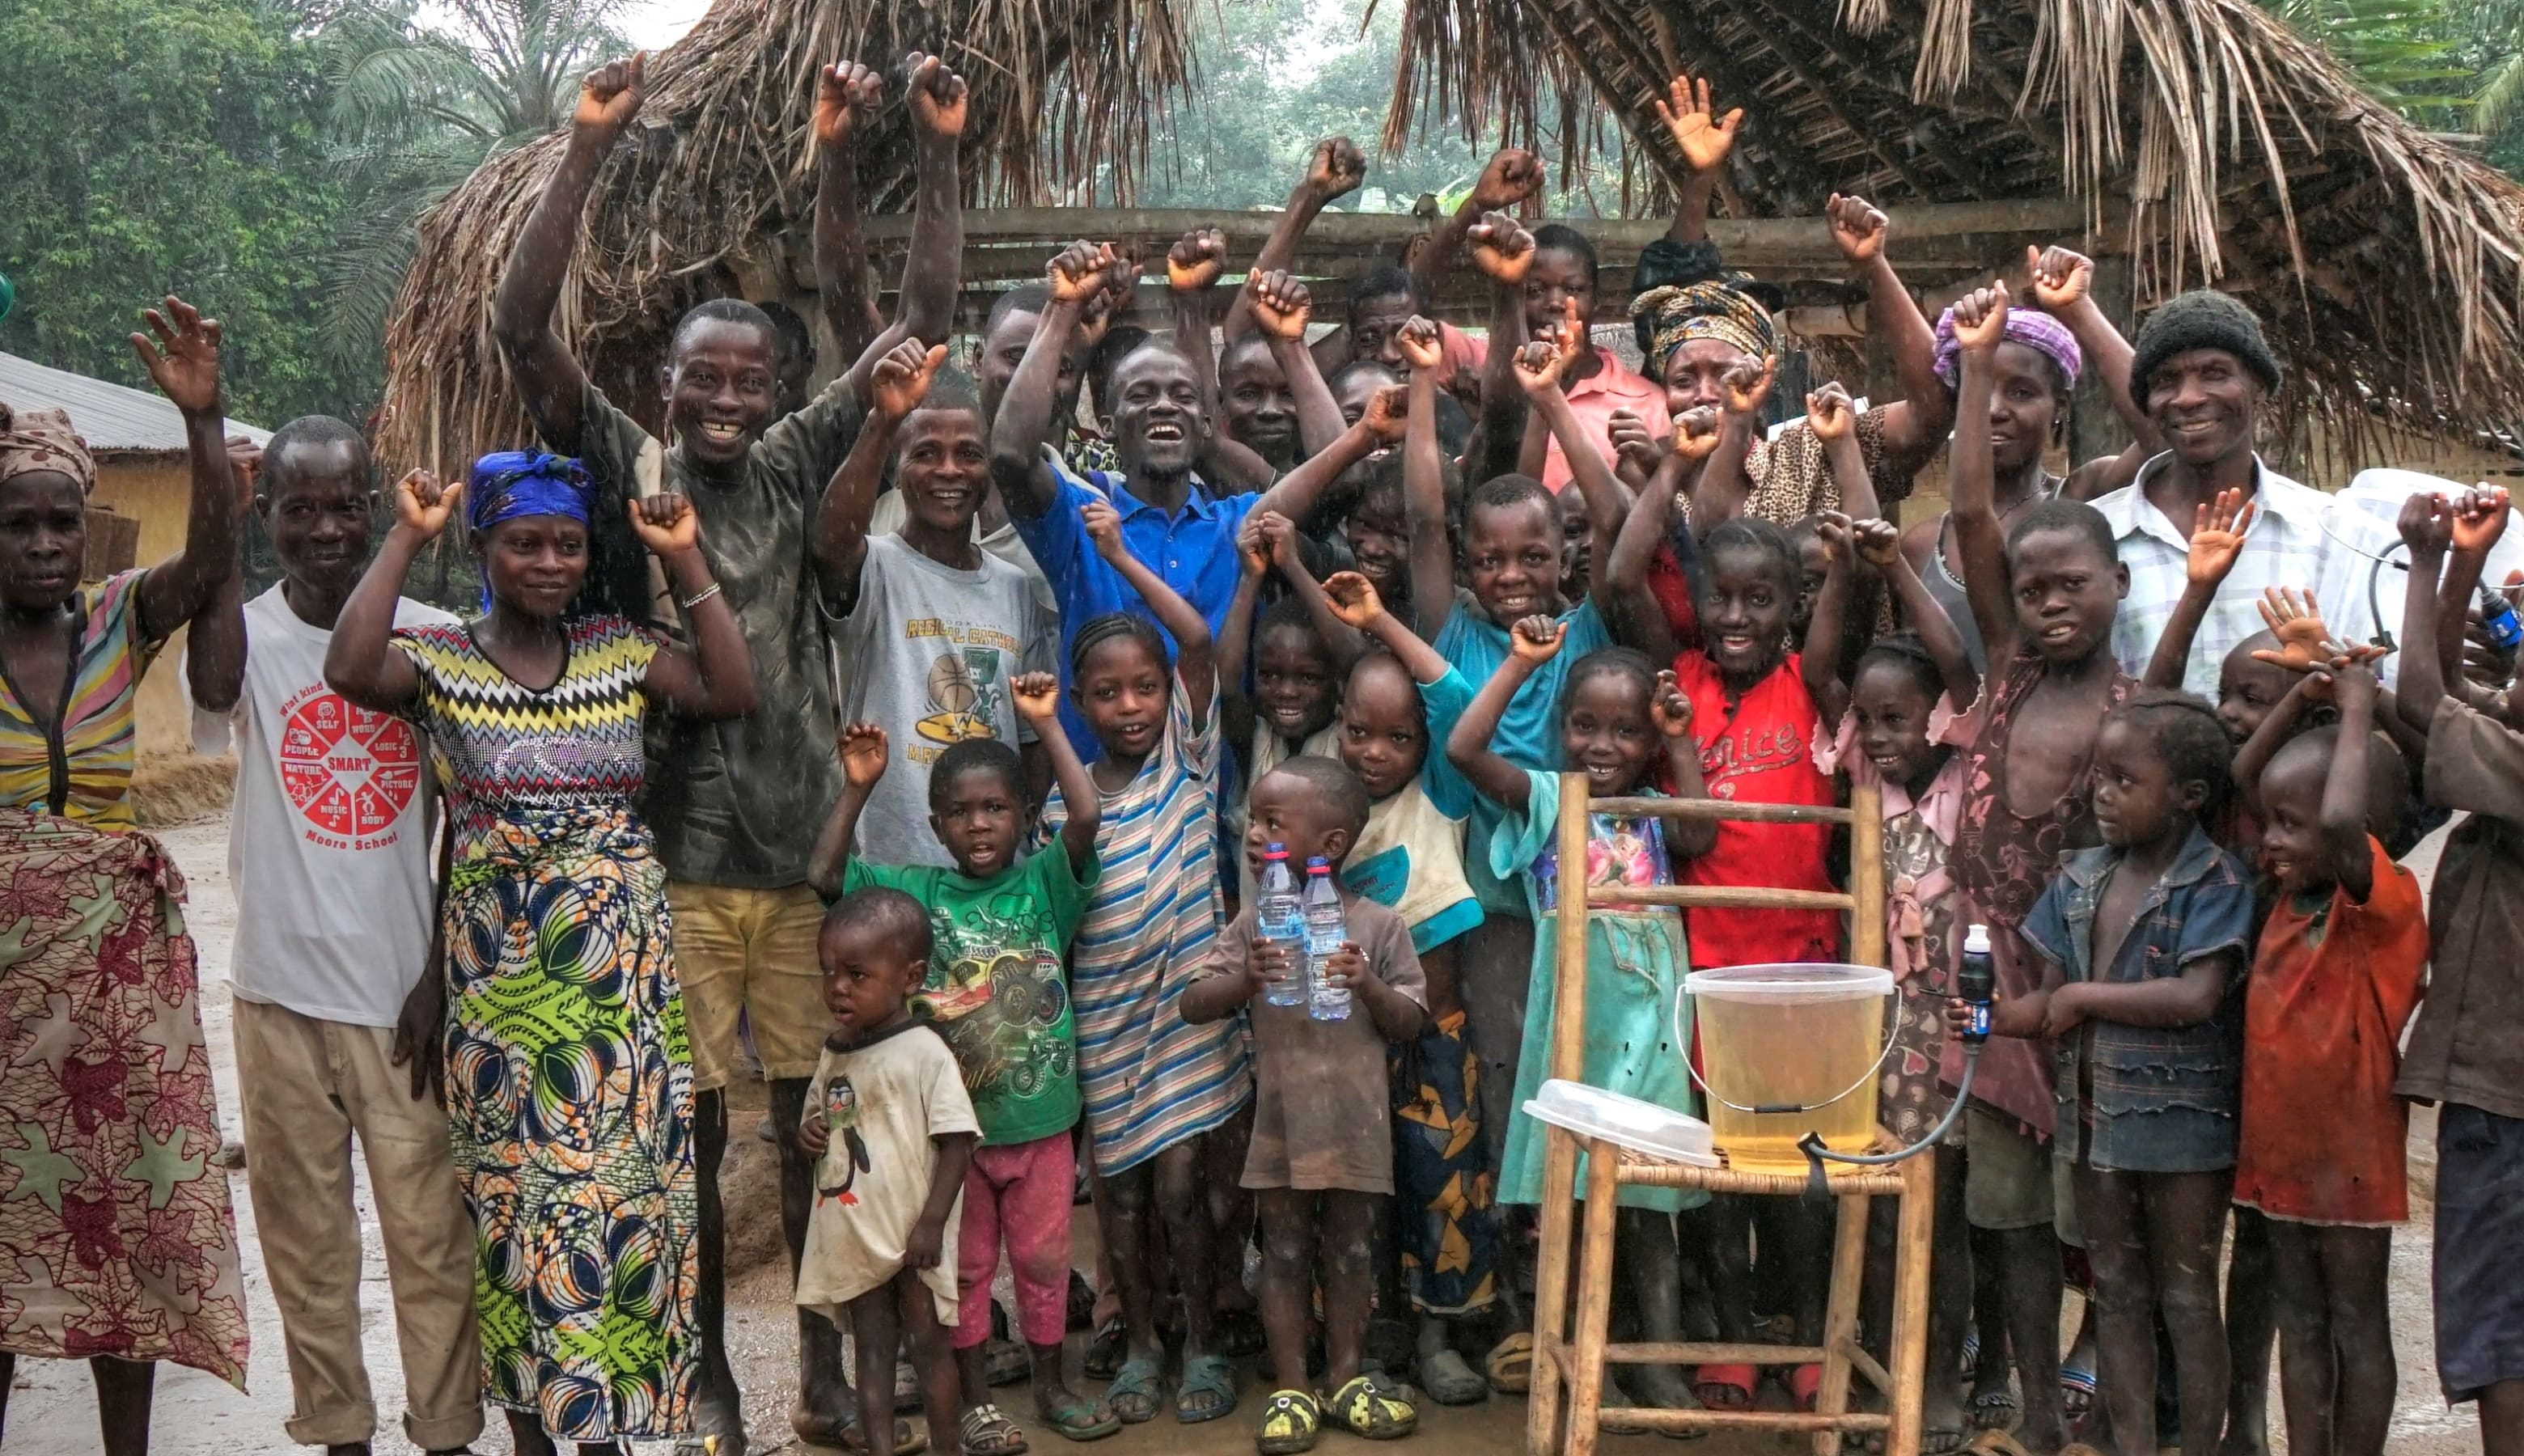 A group of Liberians poses for a photo with a Sawyer tap kit positioned in front of them.